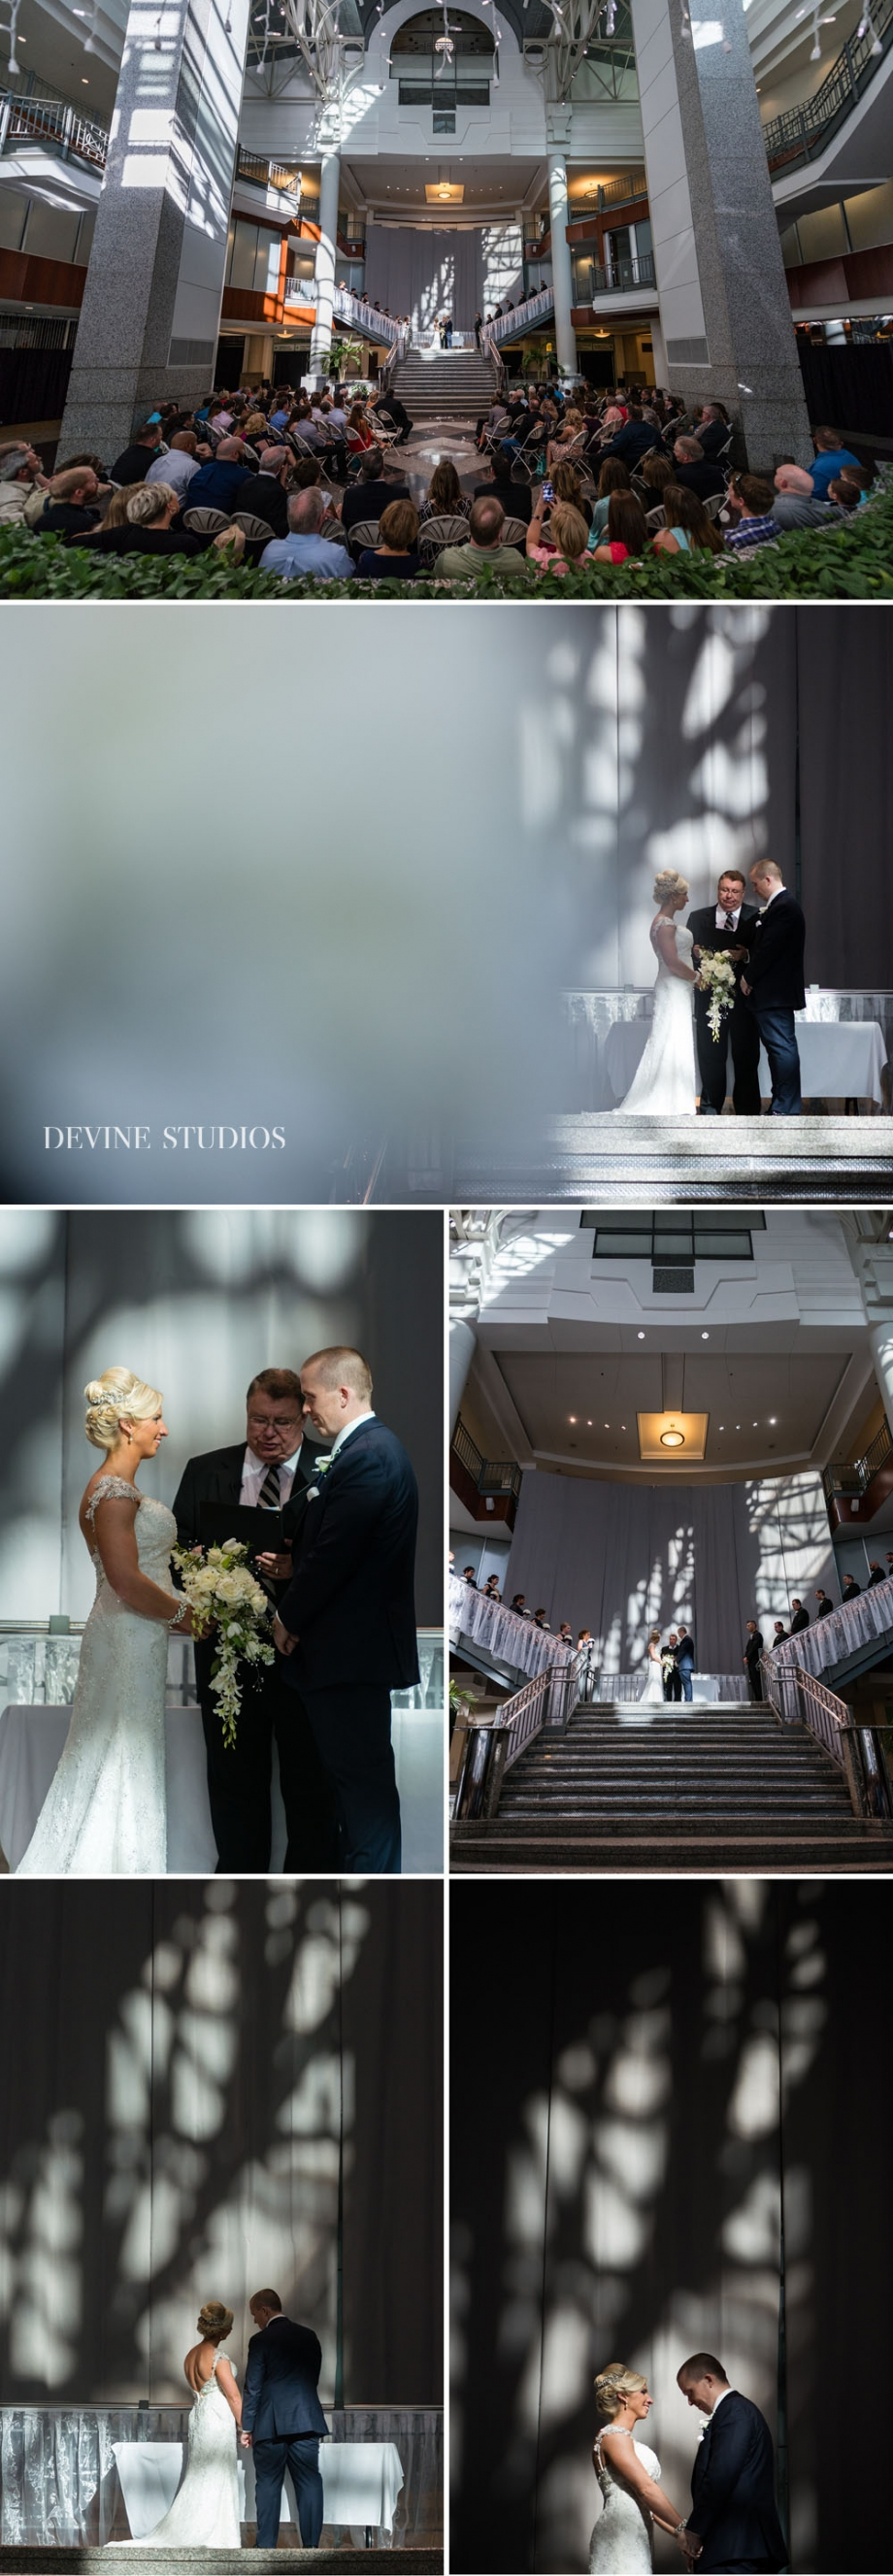 http://devinestudios.com/boudoir/wp-content/uploads/2016/05/10-839-post/Kansas-City-Wedding-Photography-Town-Pavilion-photojournalist-photographers10(pp_w920_h2654).jpg